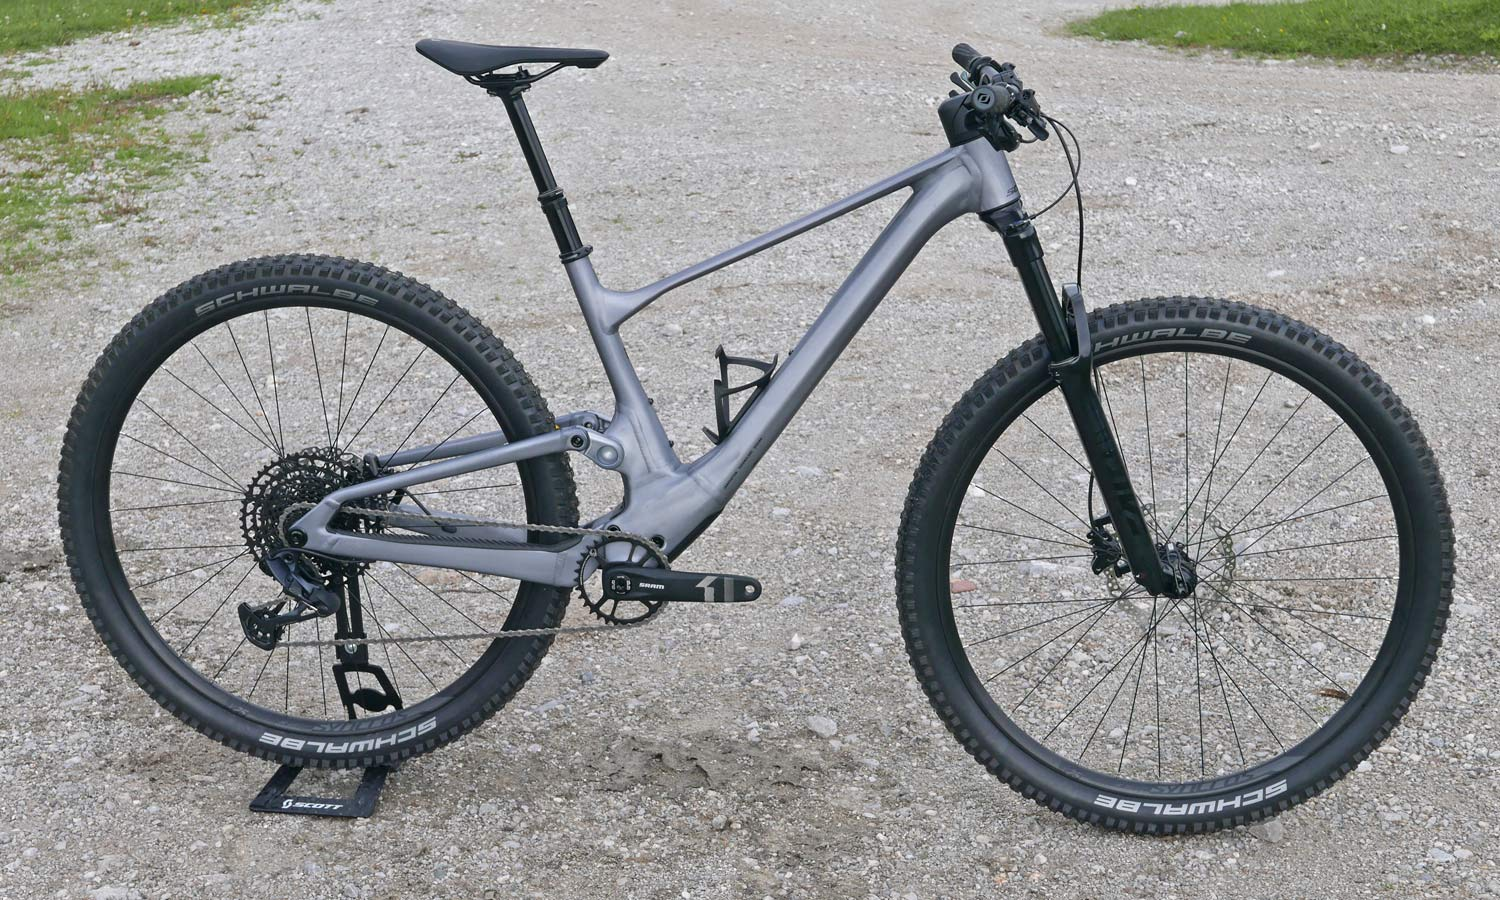 2022 Scott Spark RC & 900 XC trail mountain bikes, light fully-integrated cross-country MTB,alloy